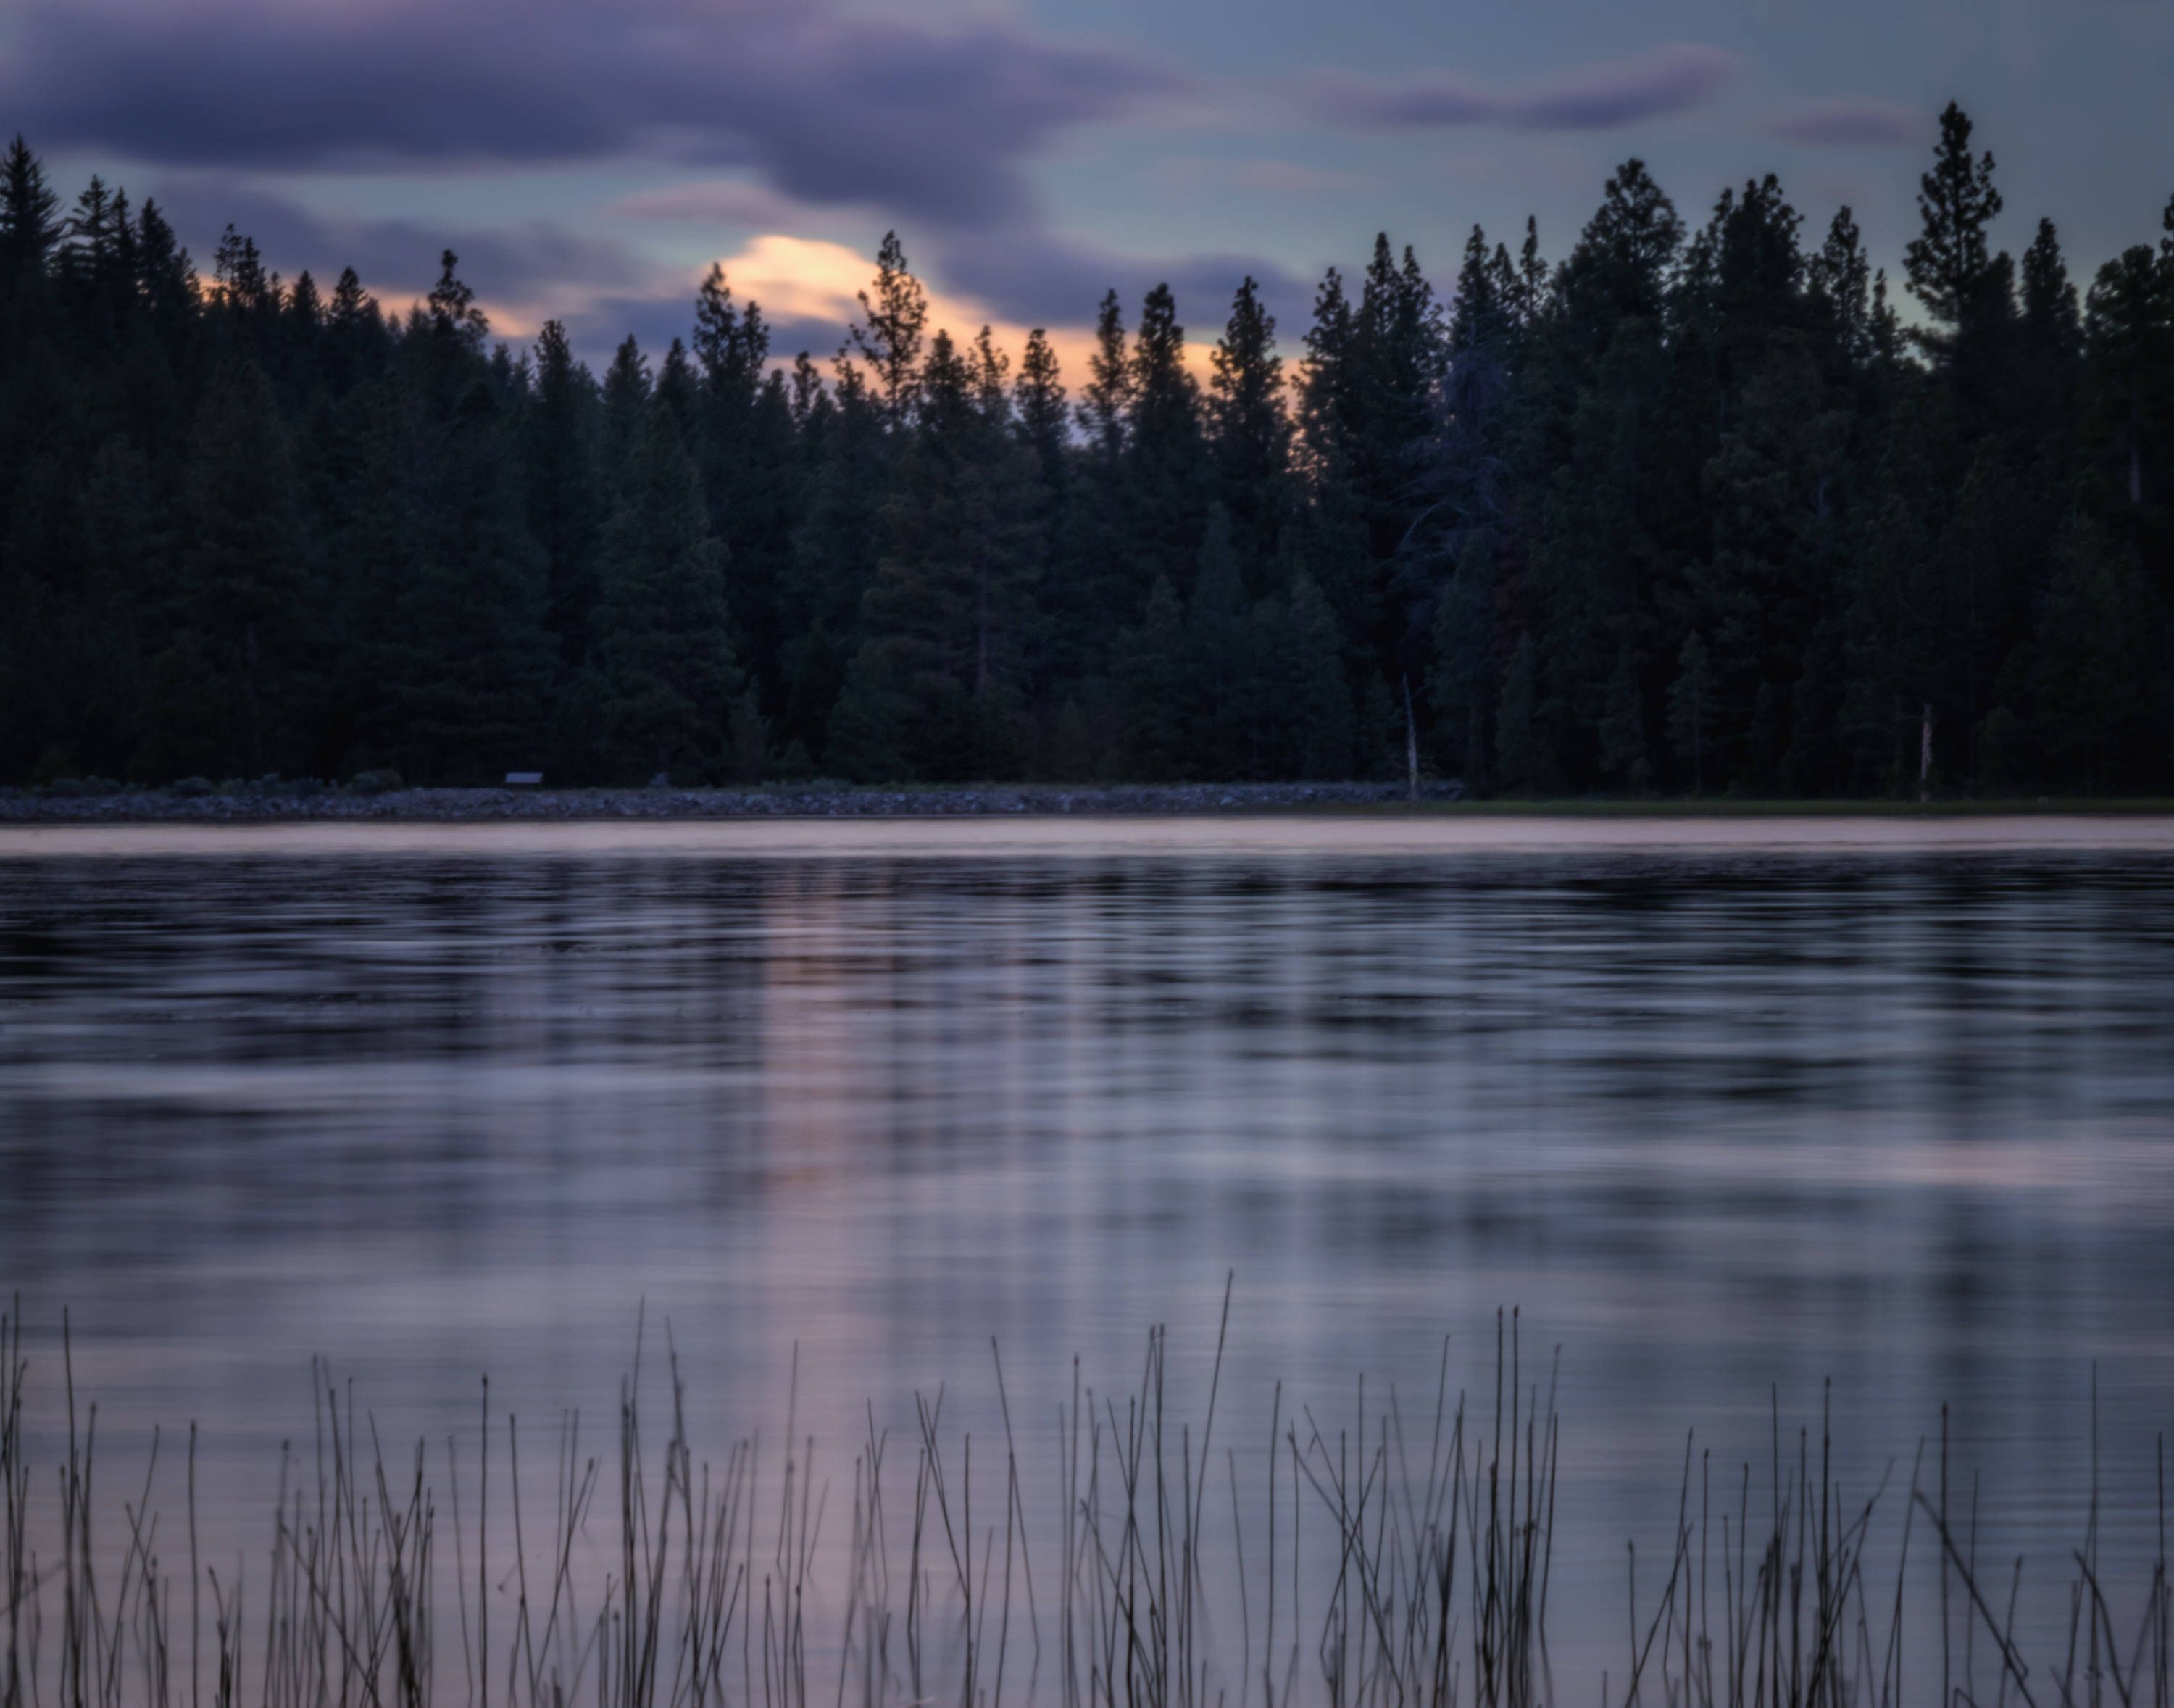 My Quiet Place (prints) long exposure photograph Juanita Lake California reflections on the water by MarniePatchett on Etsy